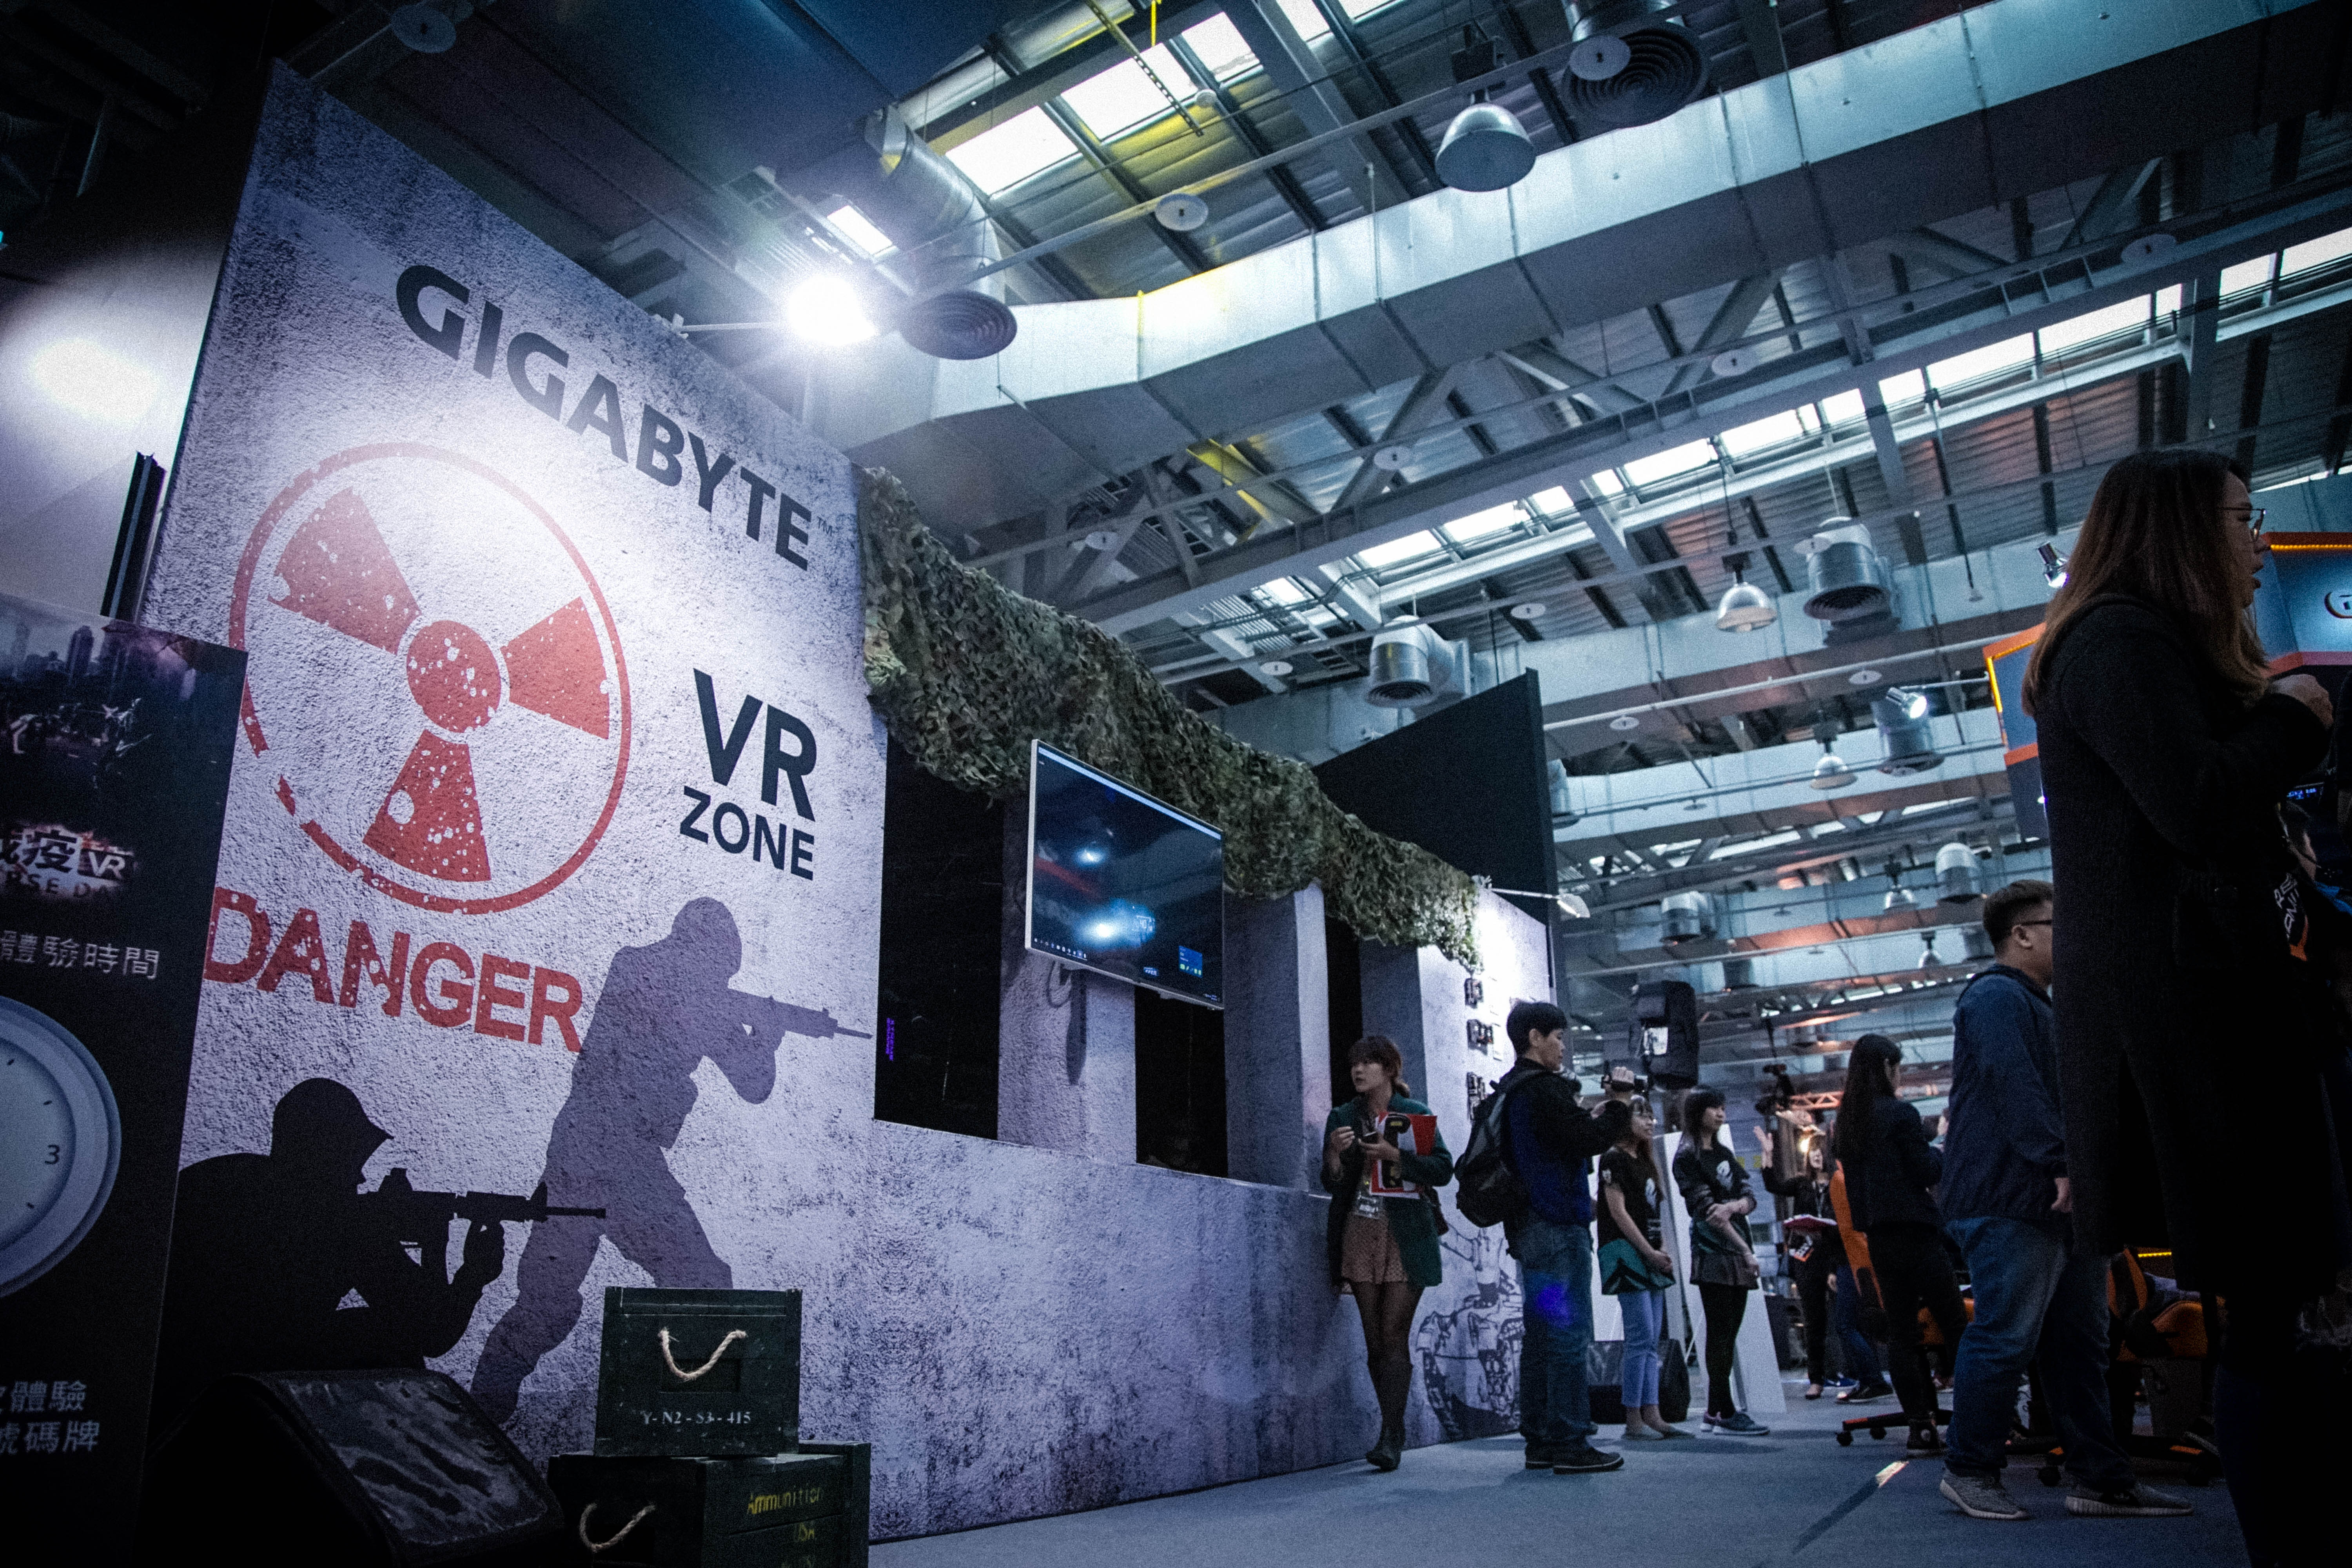 GIGABYTE@WirForce 2016 [Recap] - Day 1